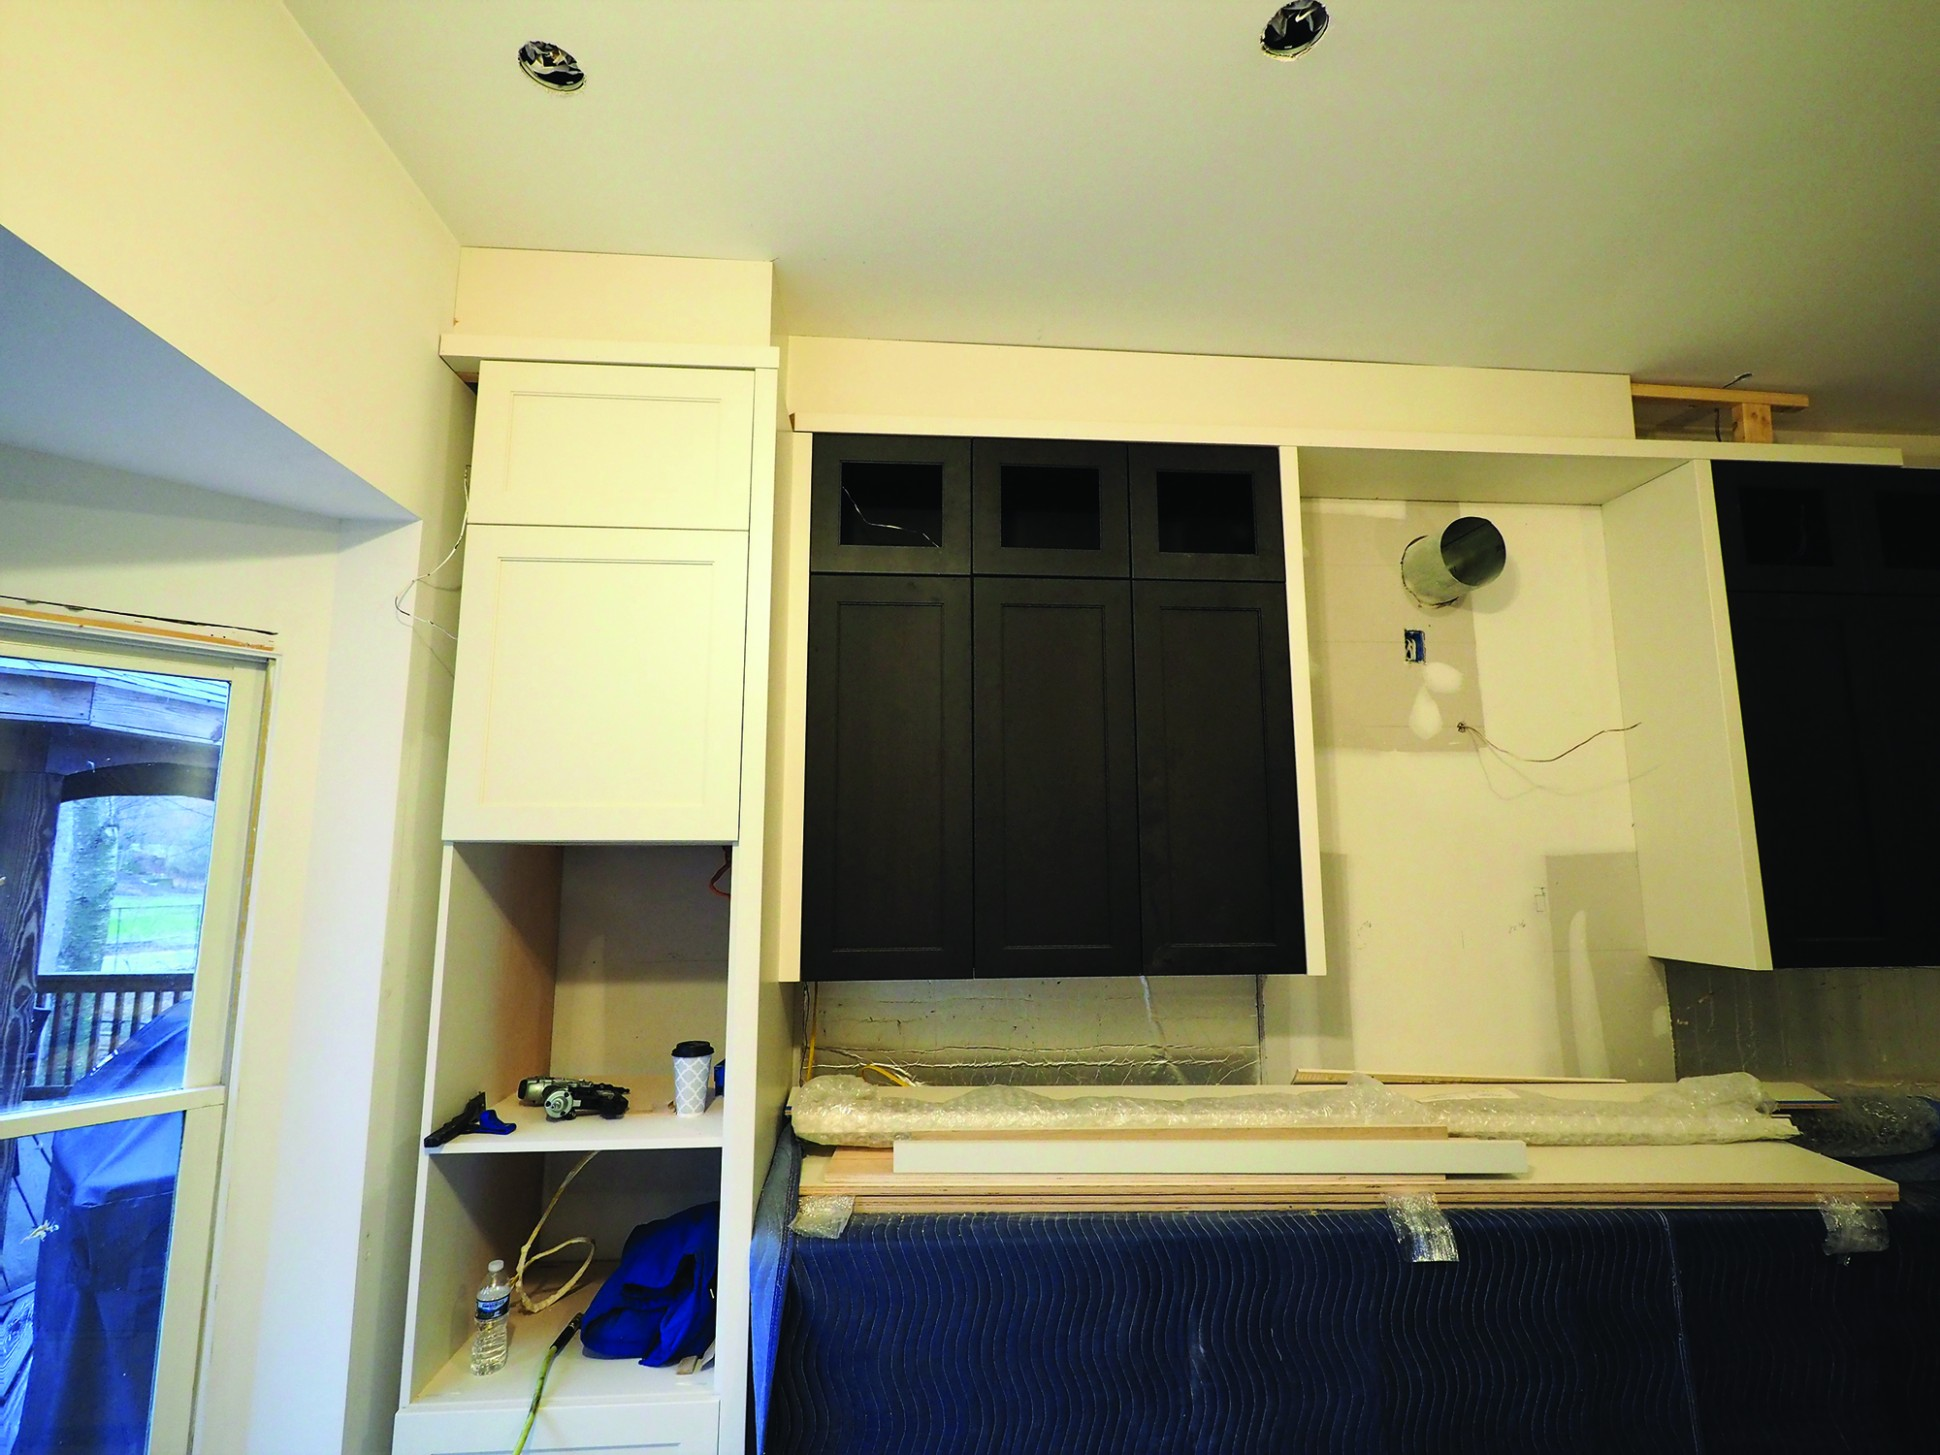 Dealing With Out-of-Level Kitchen Ceilings  JLC Online - Kitchen Cabinets Not Level